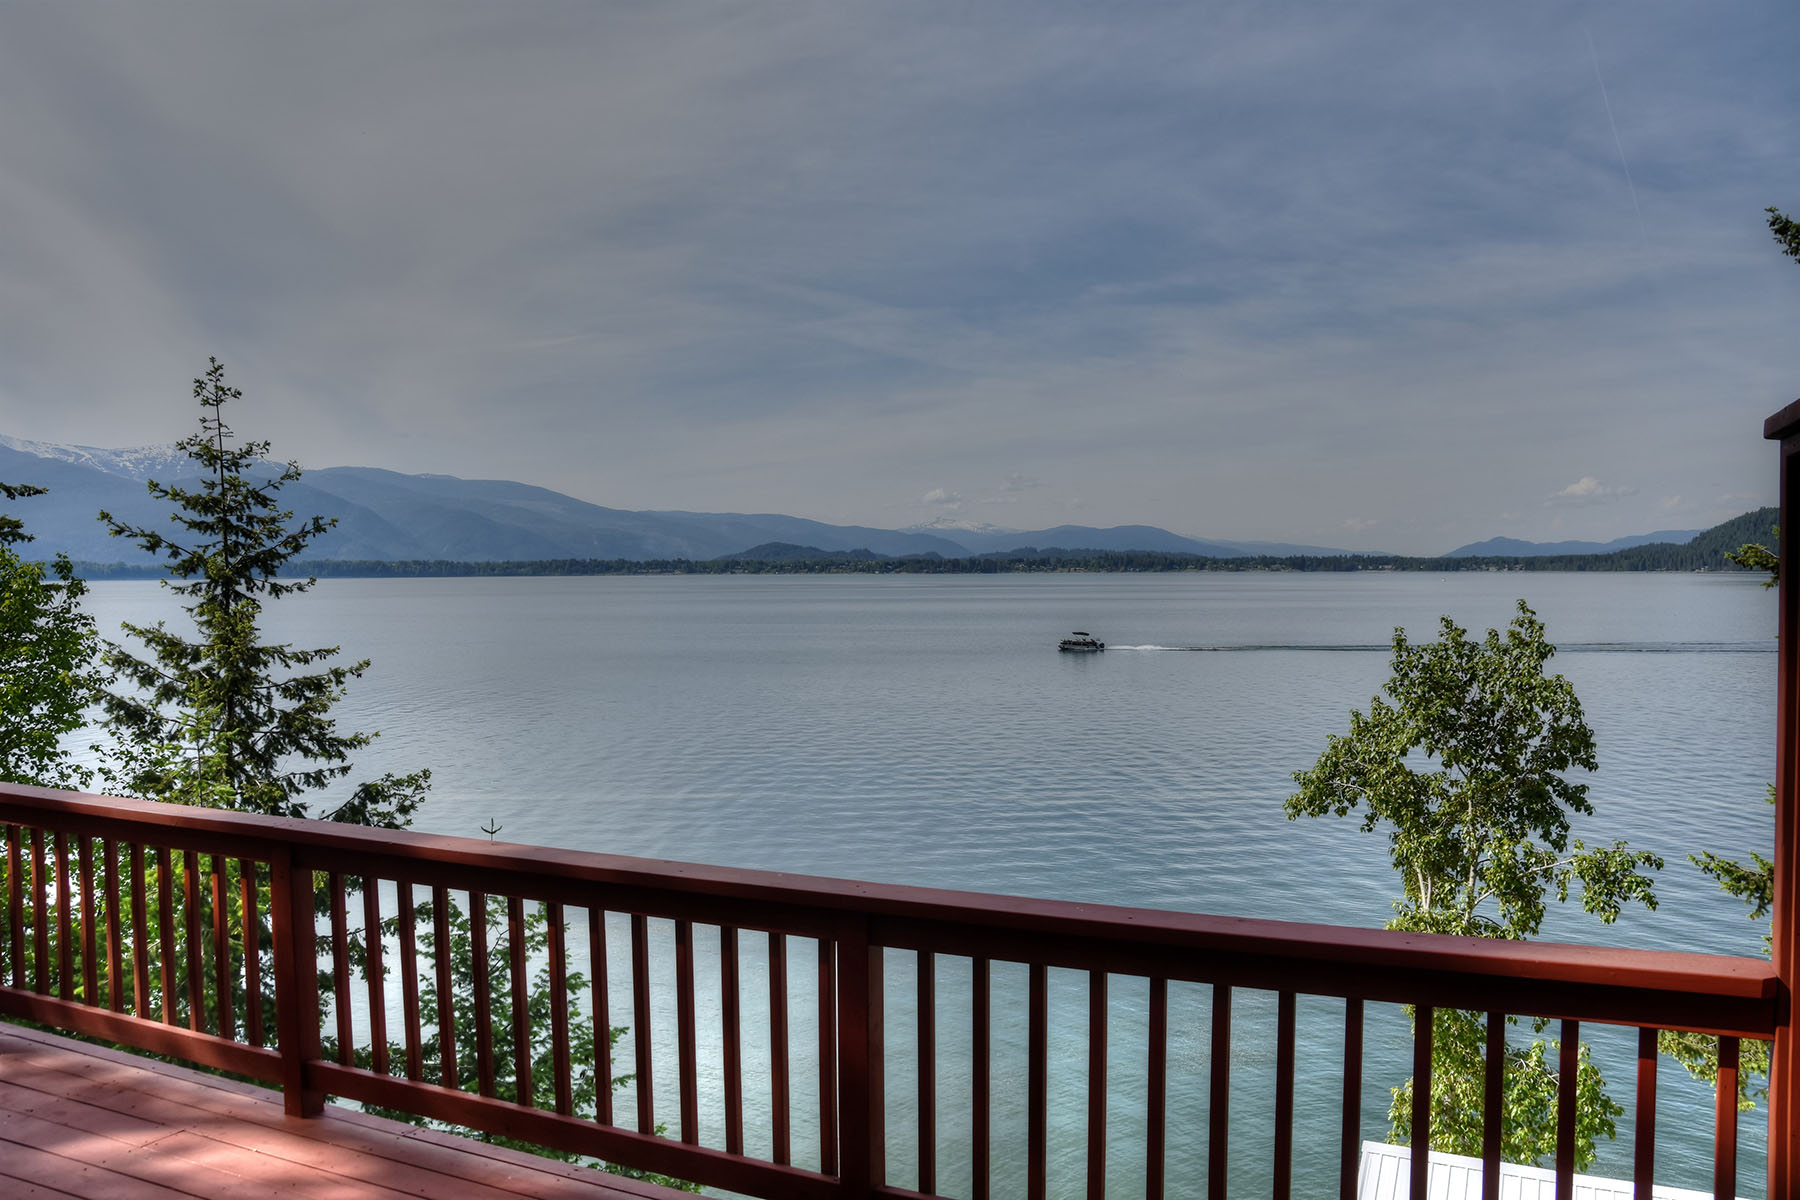 Single Family Home for Sale at Contest Point Summer Cabin 139 Contest Point Lane, Sagle, Idaho, 83860 United States